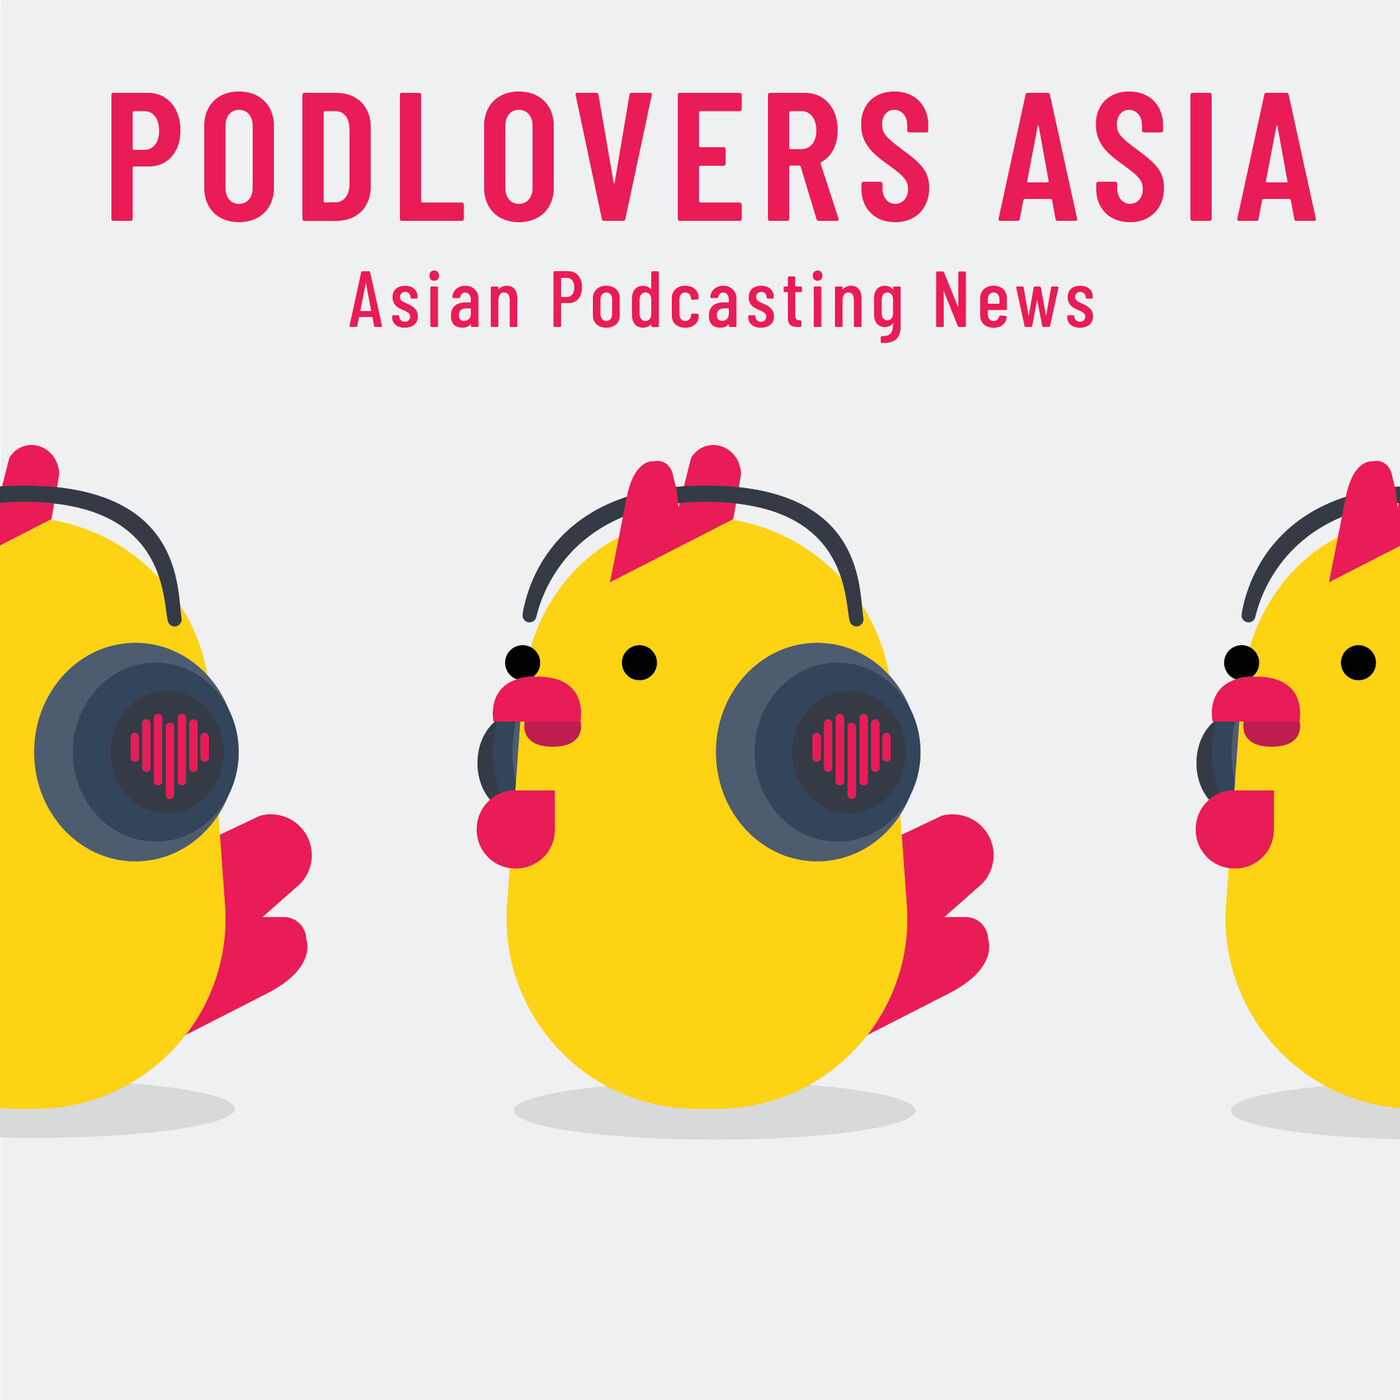 Evo Terra of Podcast Pontifications shares starting Podcast #40, why privacy is an illusion and growing the Asian podcast ecosystem